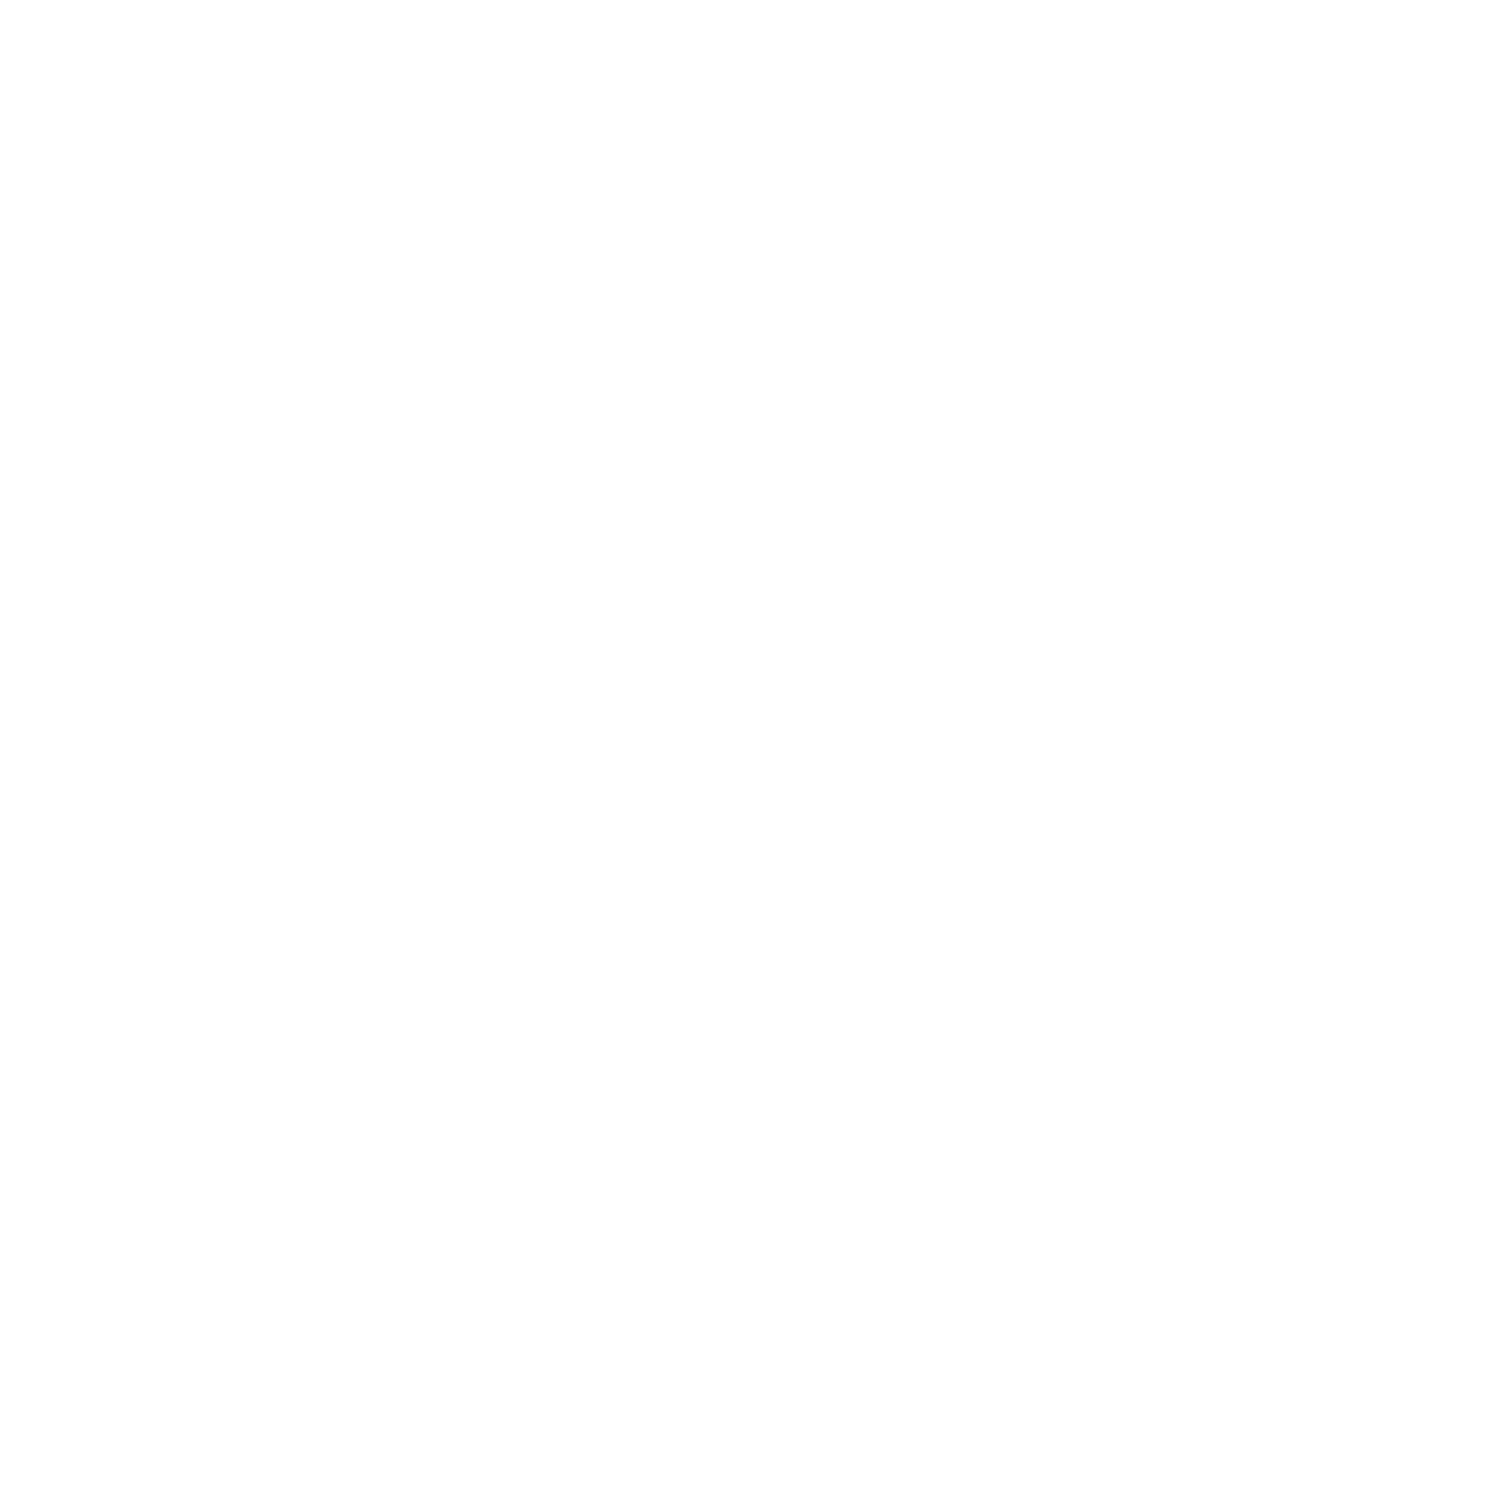 The Cole Trains